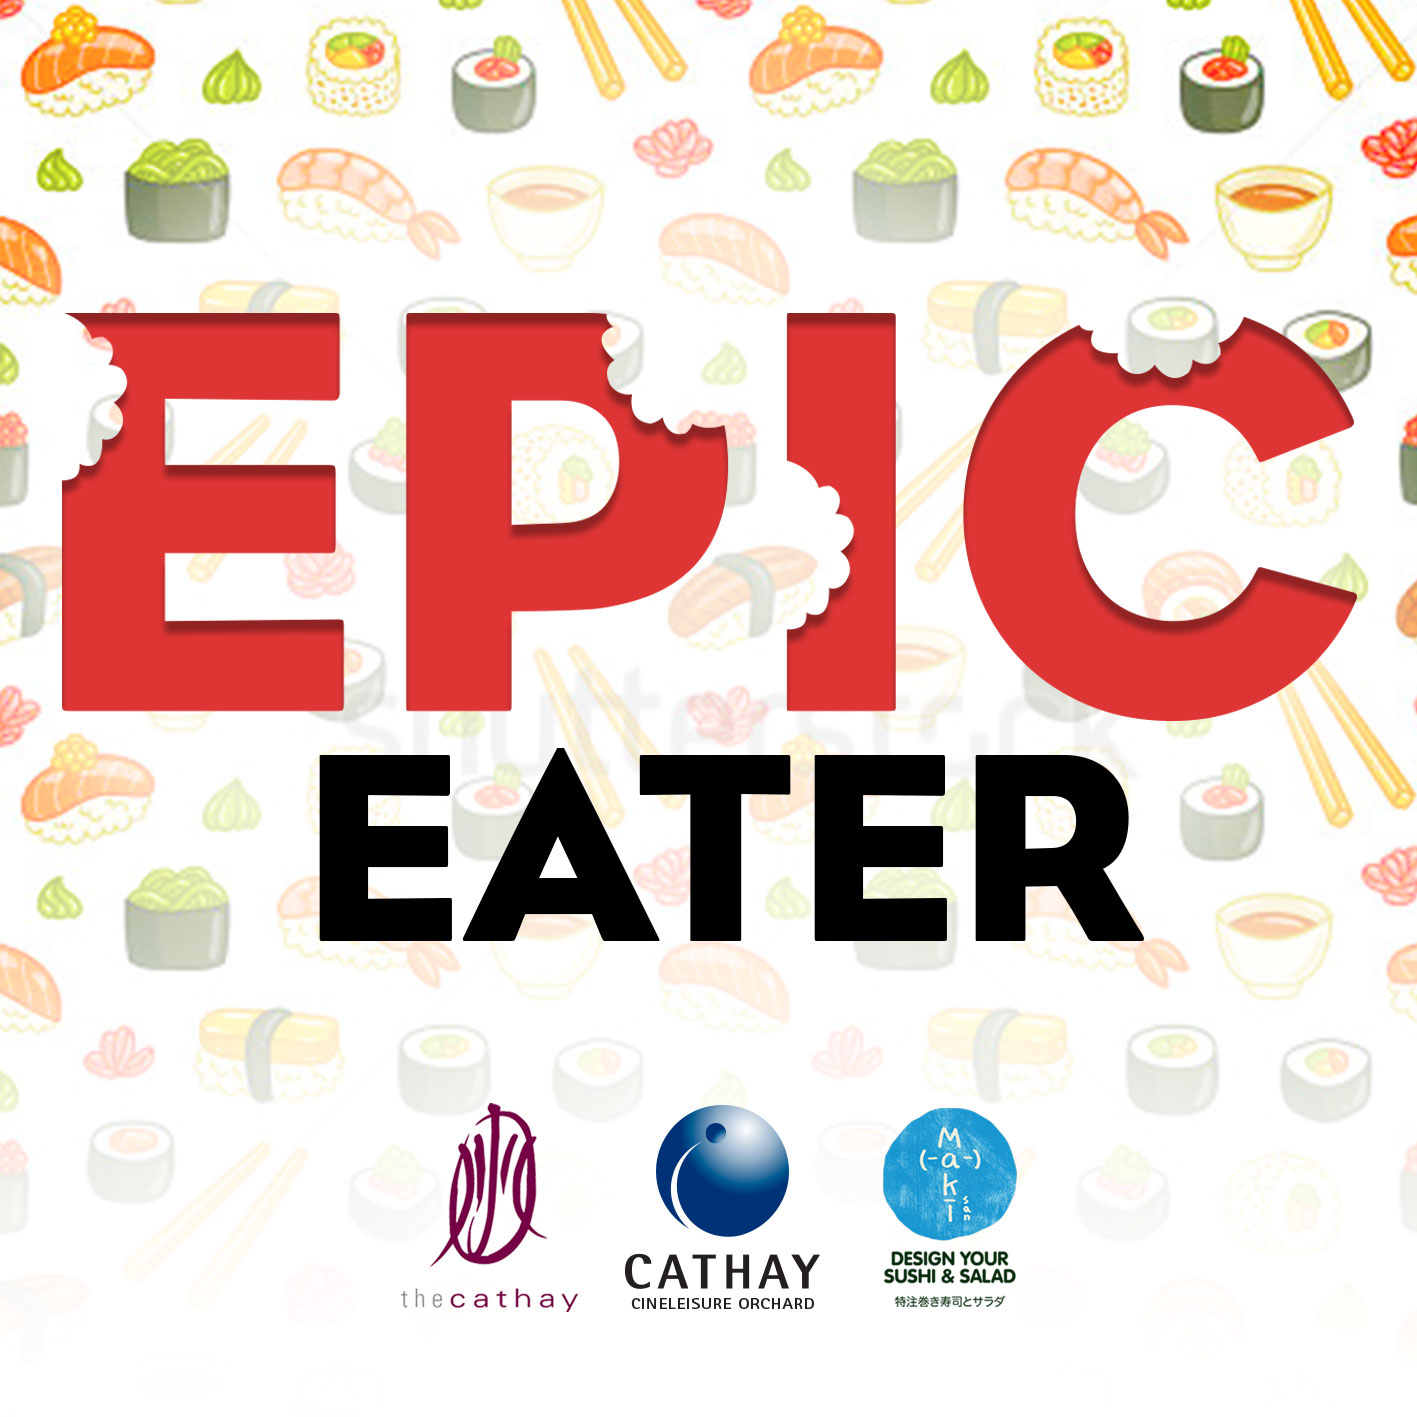 Cathay Malls Epic Eater